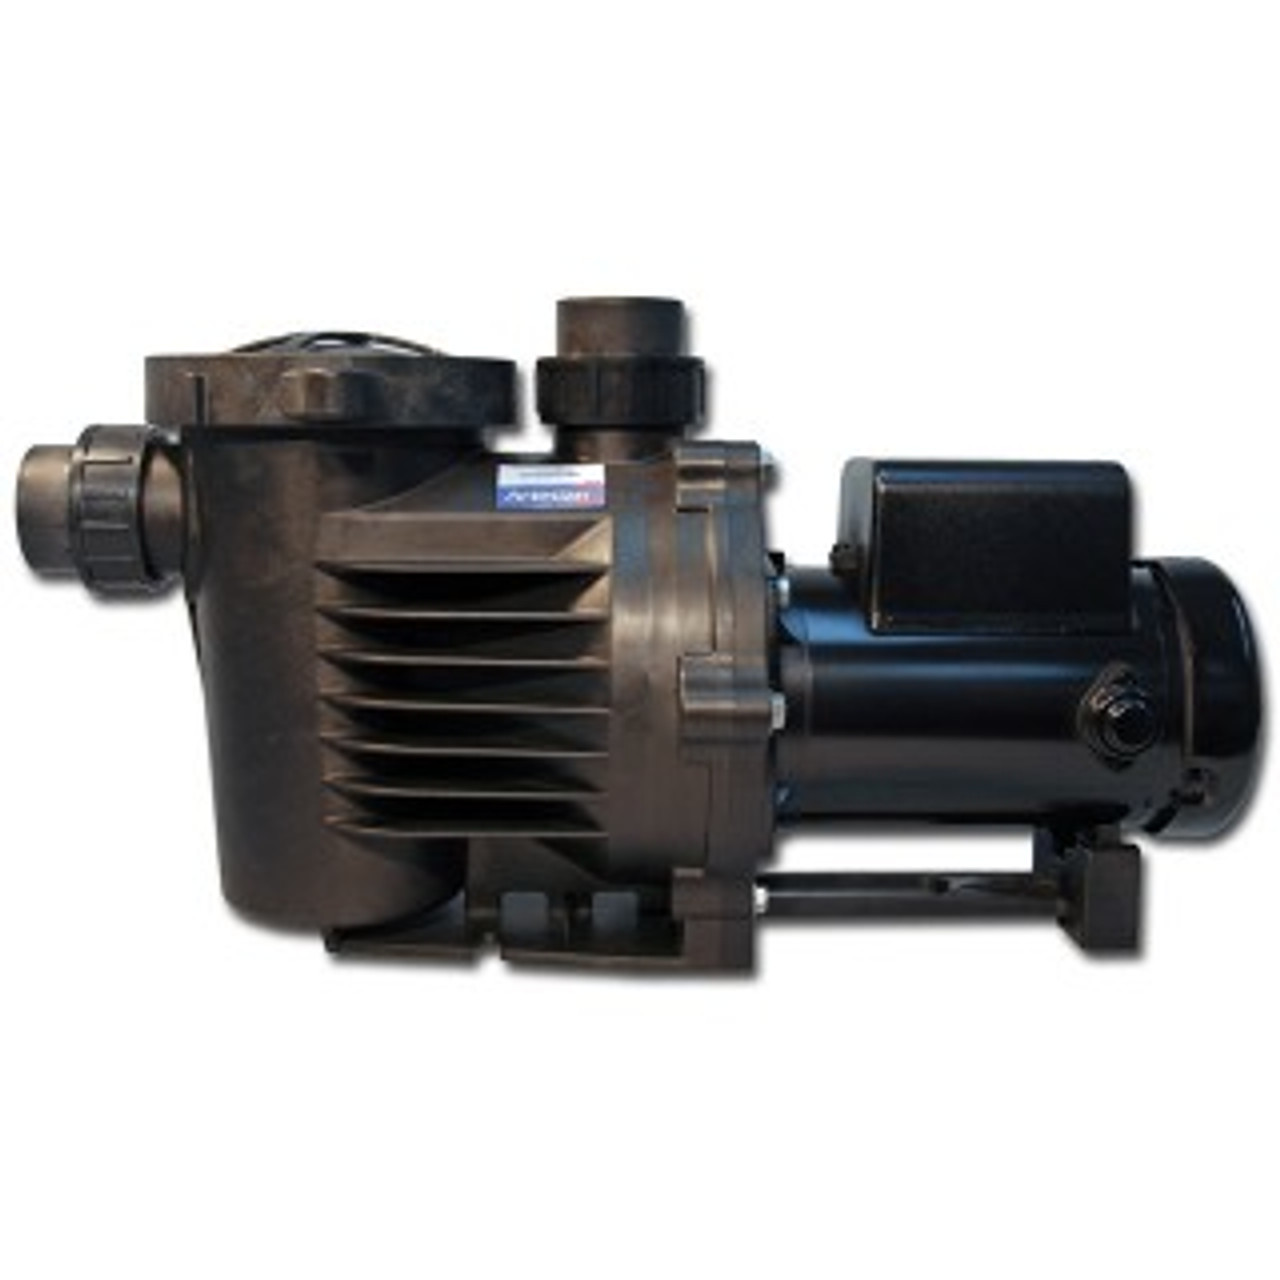 """Performance Pro Artesian2, 1/2HP, 115/230V, 1 Phase, 7380 GPH @ 7'TDH , 2"""" Unions In/Out. (A2-1/2-HF)"""